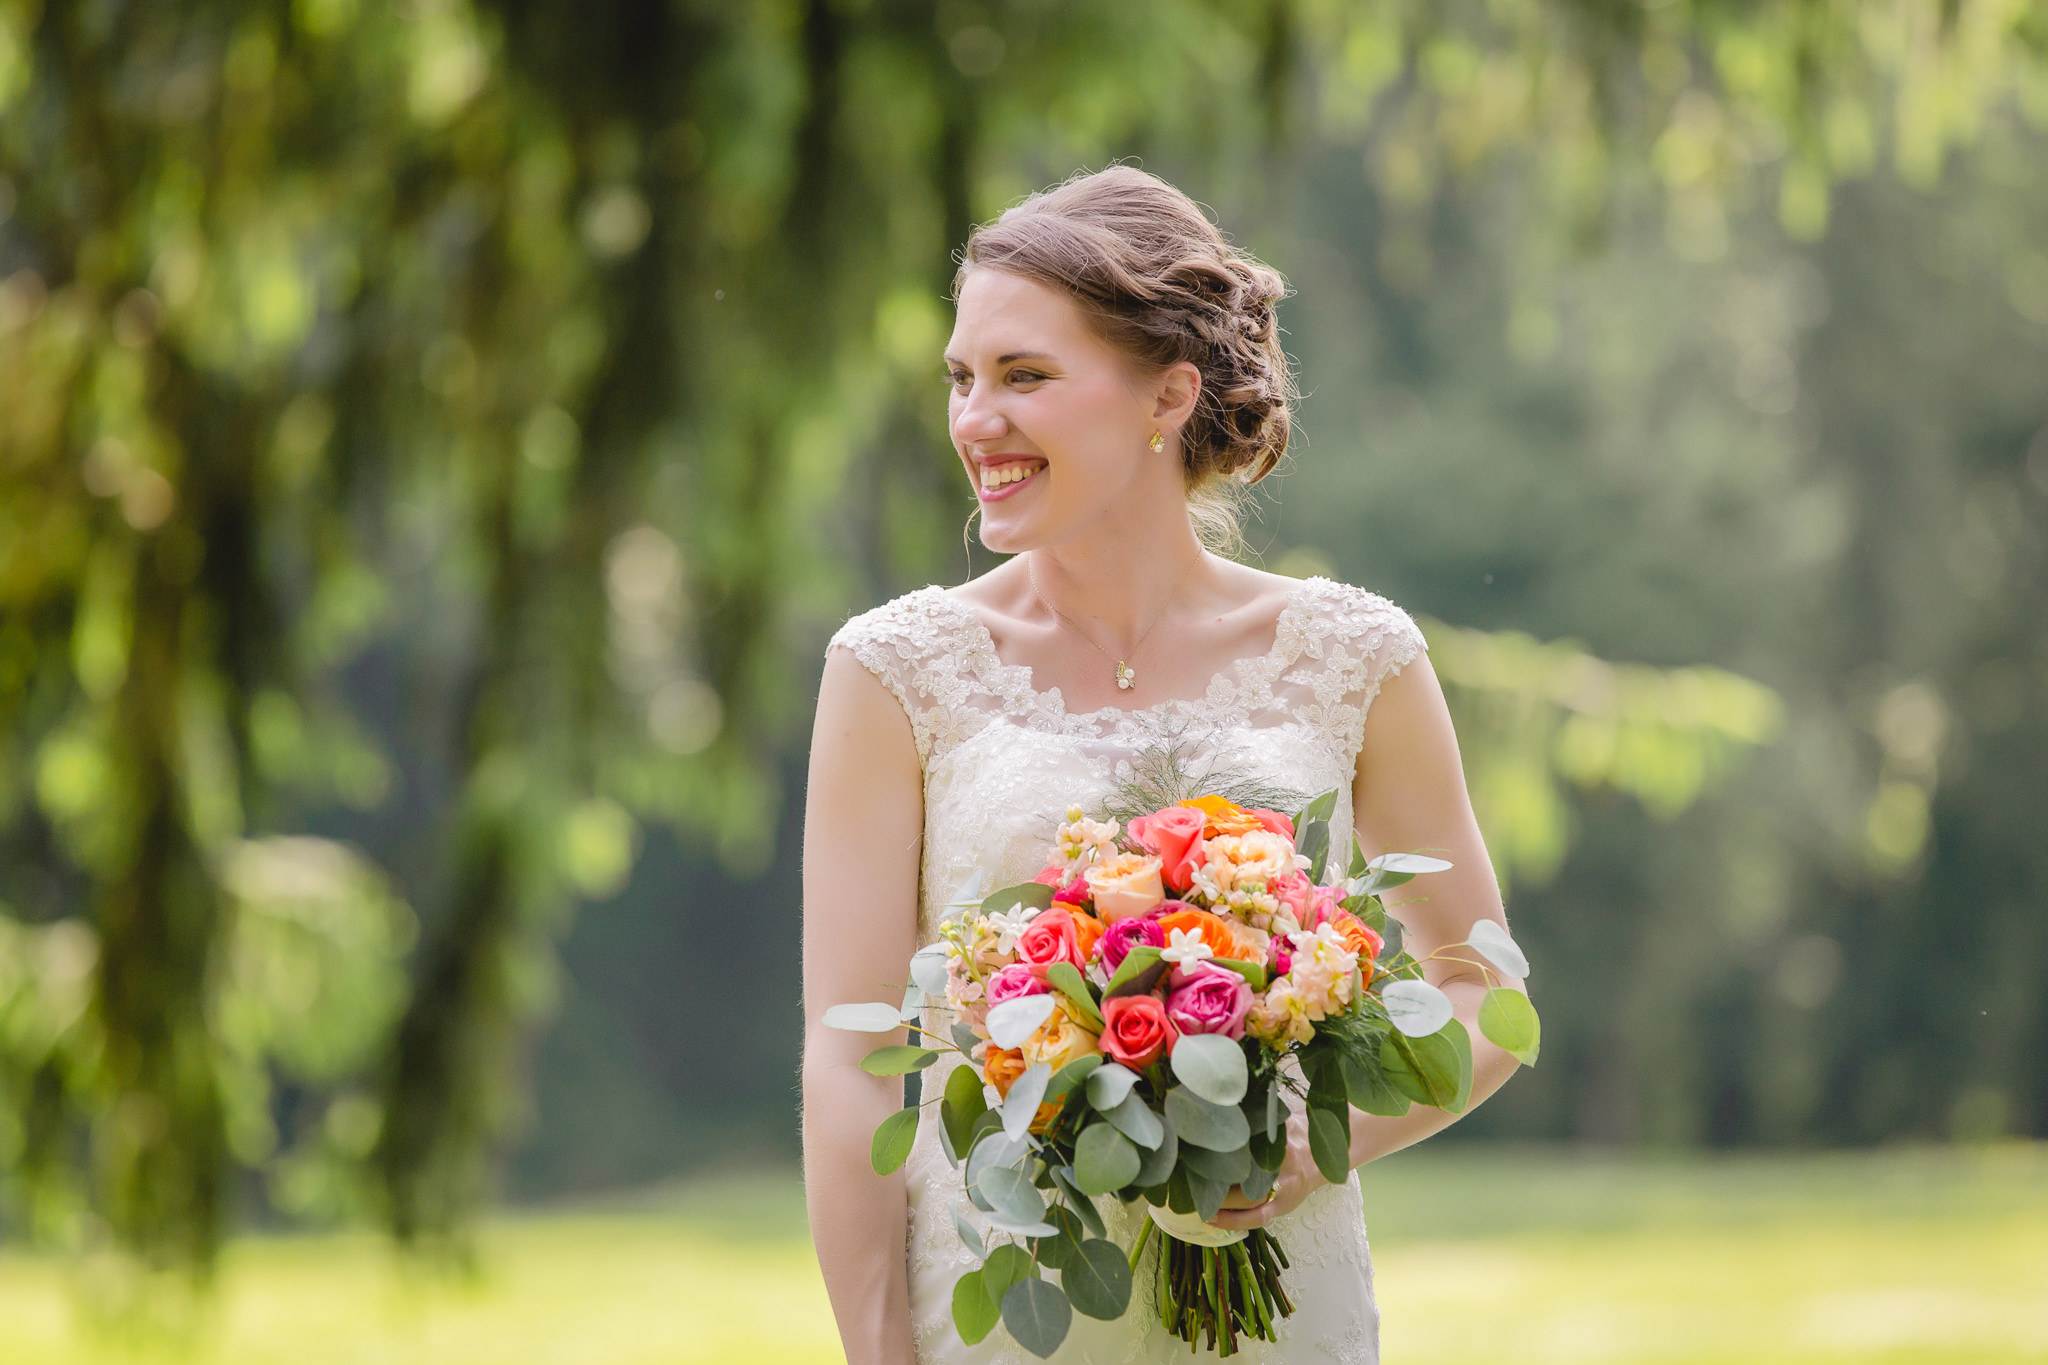 Bride holding bouquet by McCandless Floral at Shannopin Country Club